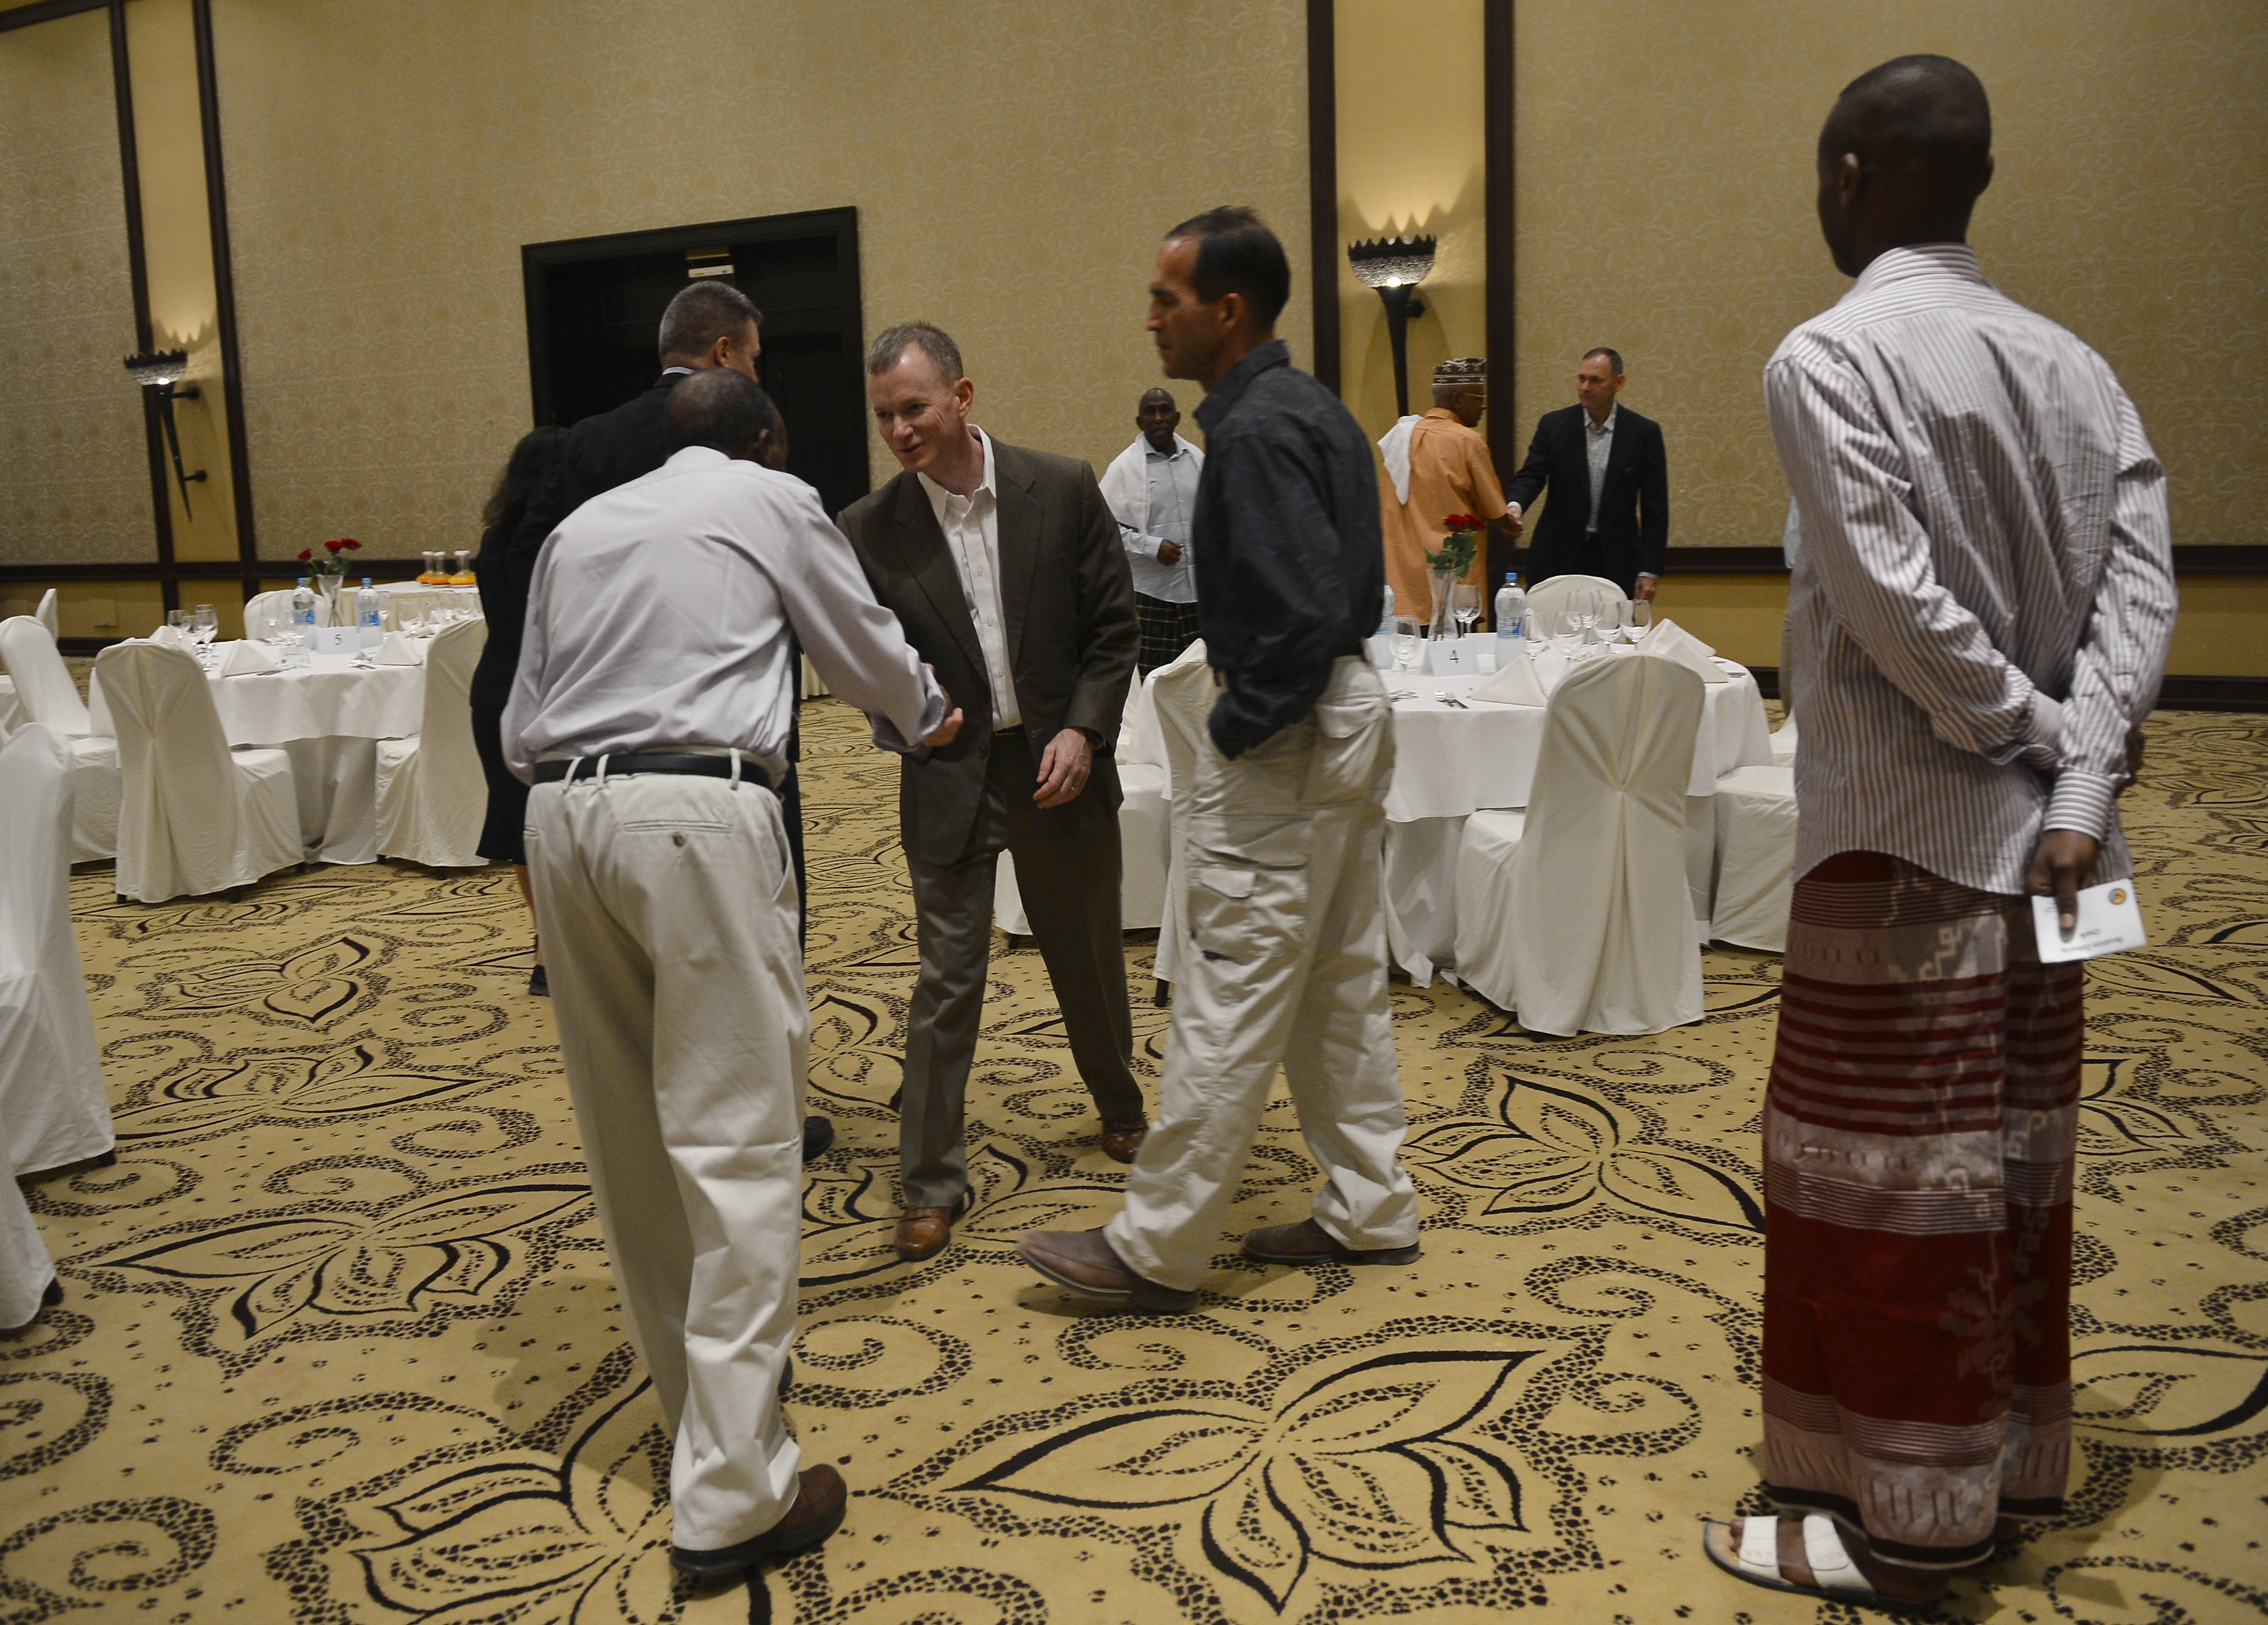 U.S. Air Force Brig. Gen. William P. West, Combined Joint Task Force-Horn of Africa deputy commander, greets Iftar dinner guests at the Kempinski Hotel, Djibouti, June 29, 2015. Since 2006, CJTF-HOA, Camp Lemonnier, and U.S. Embassy leaders have gathered with Djiboutian military leaders and their families for the annual celebration of the month-long Ramadan fasting. (U.S. Air Force photo by Senior Airman Nesha Humes)